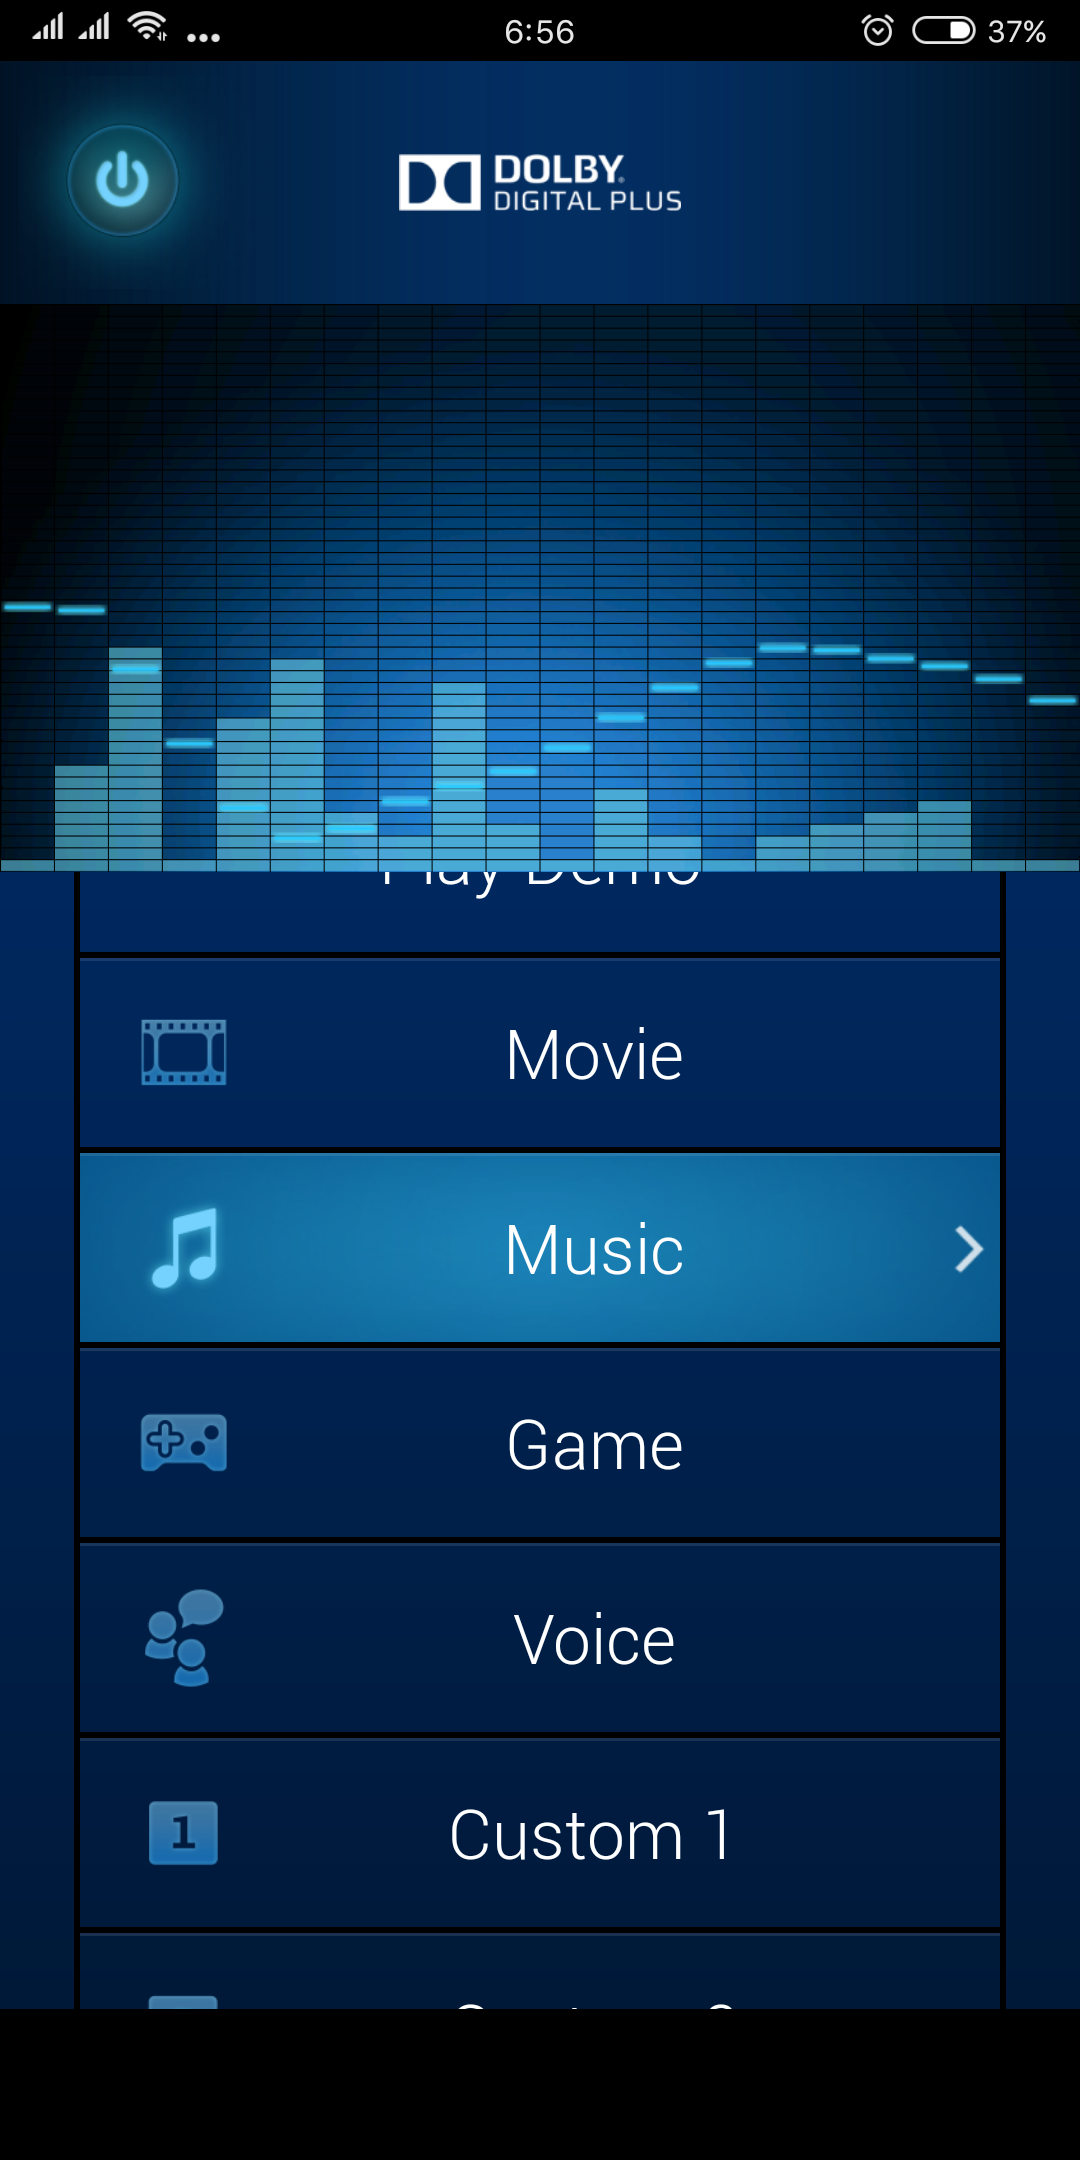 Screenshot_2018-08-04-06-56-17-861_com.dolby.ds1appUI.png